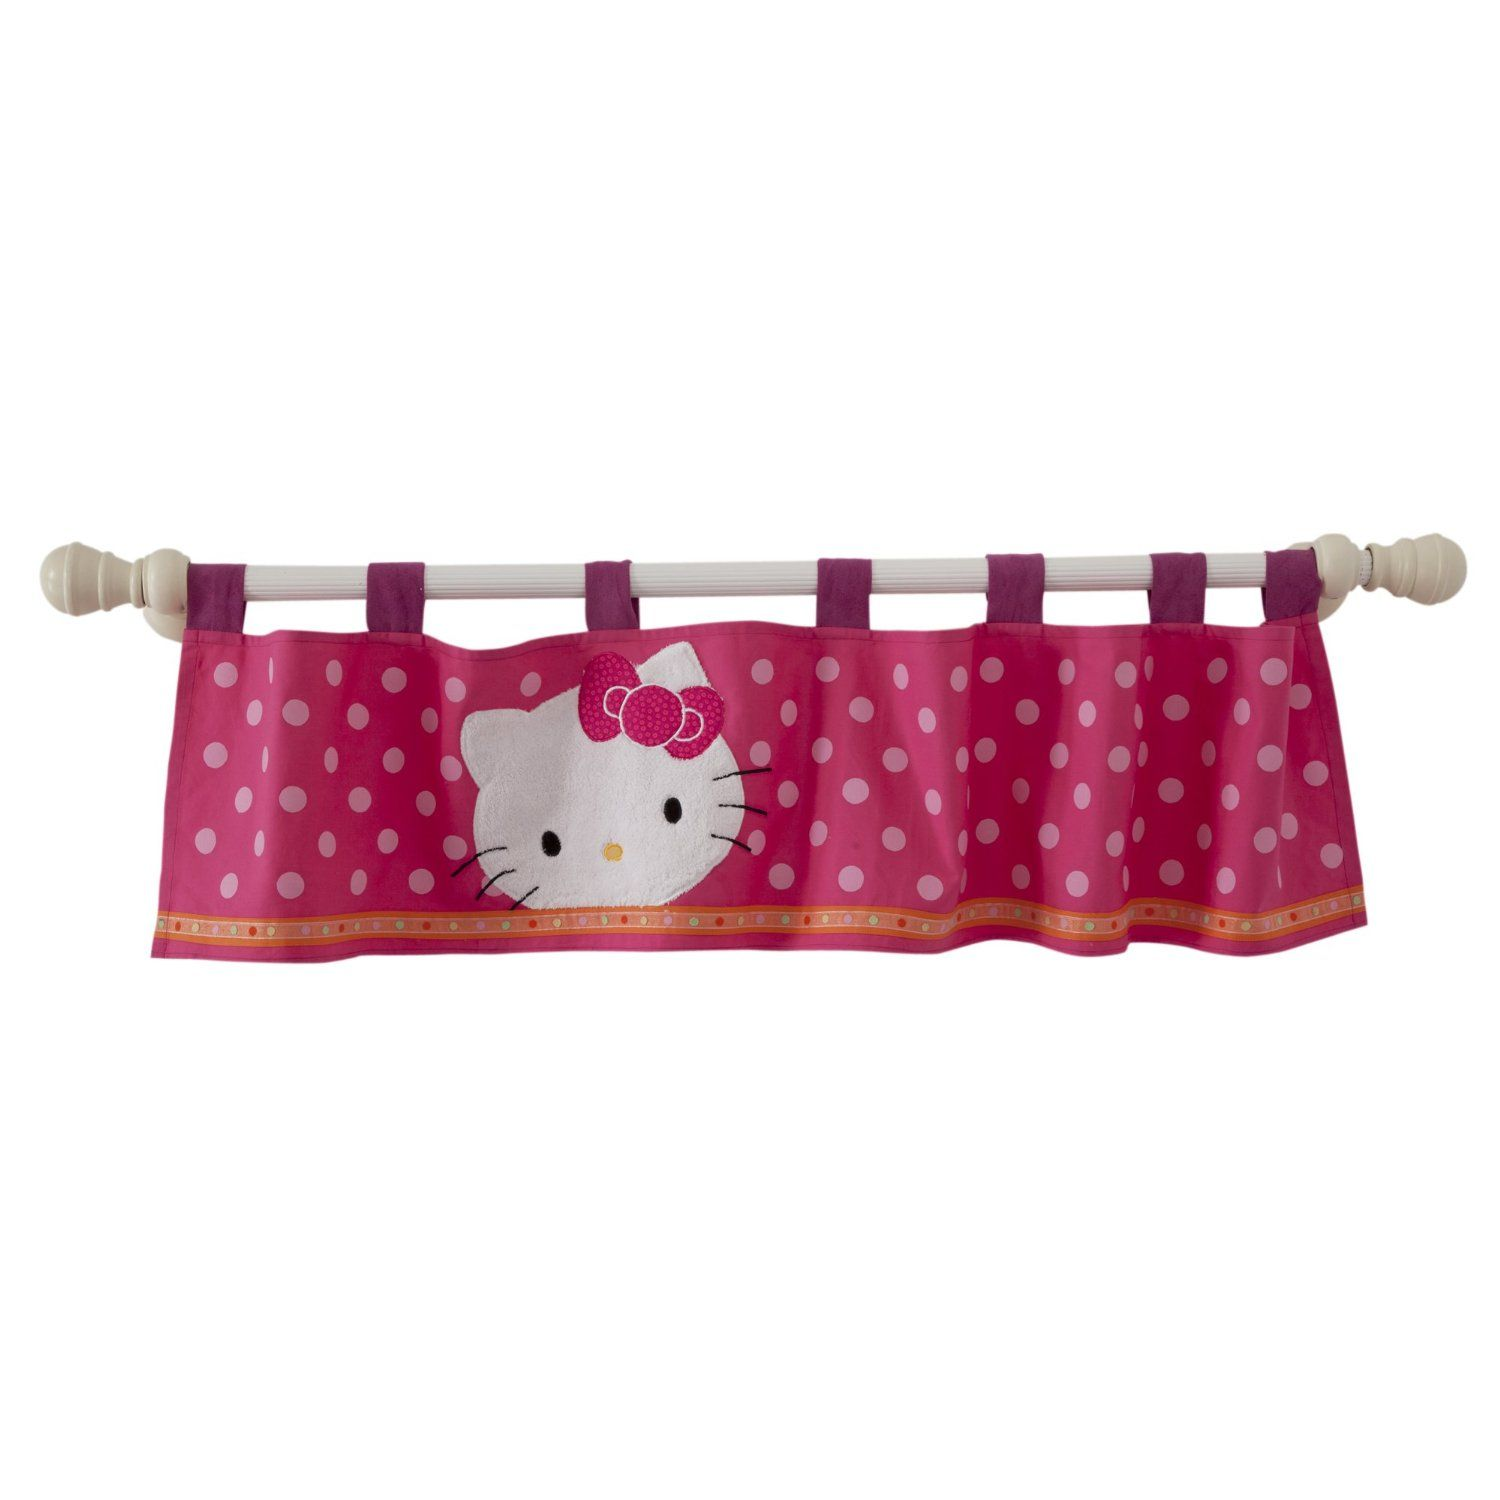 Bed bath and beyond window shades  ium a sucker for hello kitty  just damn cute  pinterest  suckers